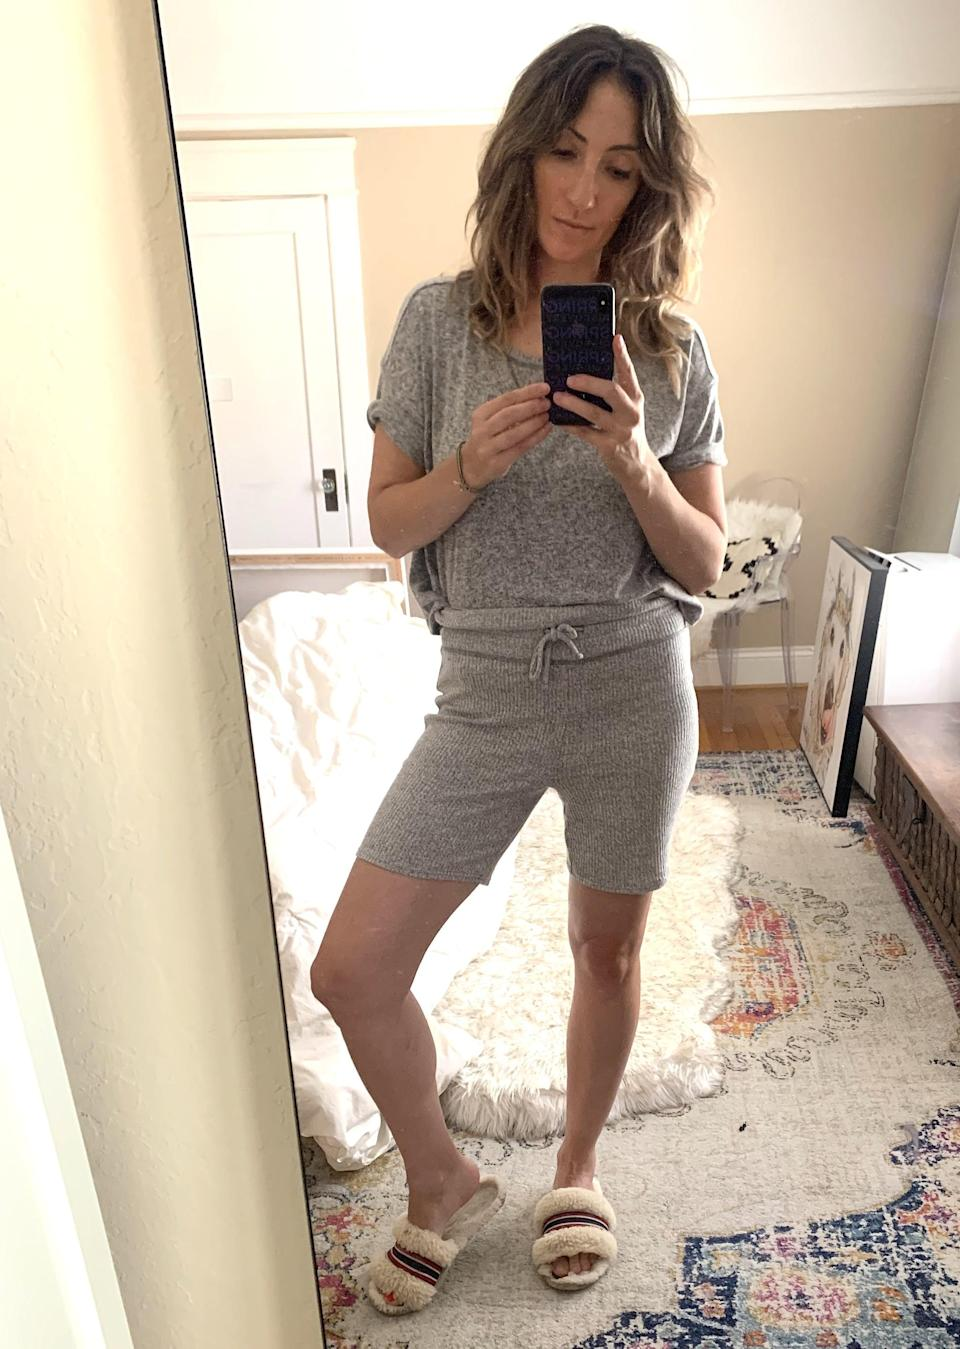 """<p><strong>The item:</strong> <span>Cozy Rib-Knit Rollover-Waist Pajama Shorts </span> ($17) </p> <p><strong>What our editor said: </strong>""""The knit is ribbed and a mix of rayon, polyester, and spandex. I put them on and fell in love immediately. They hit a few inches above my knees but are long enough so my thighs don't touch while I sleep (a pet peeve)."""" - RB<br> If you want to read more, here is the complete <a href=""""https://www.popsugar.com/fashion/comfortable-pajama-short-set-from-old-navy-47666817"""" class=""""link rapid-noclick-resp"""" rel=""""nofollow noopener"""" target=""""_blank"""" data-ylk=""""slk:review"""">review</a>.</p>"""